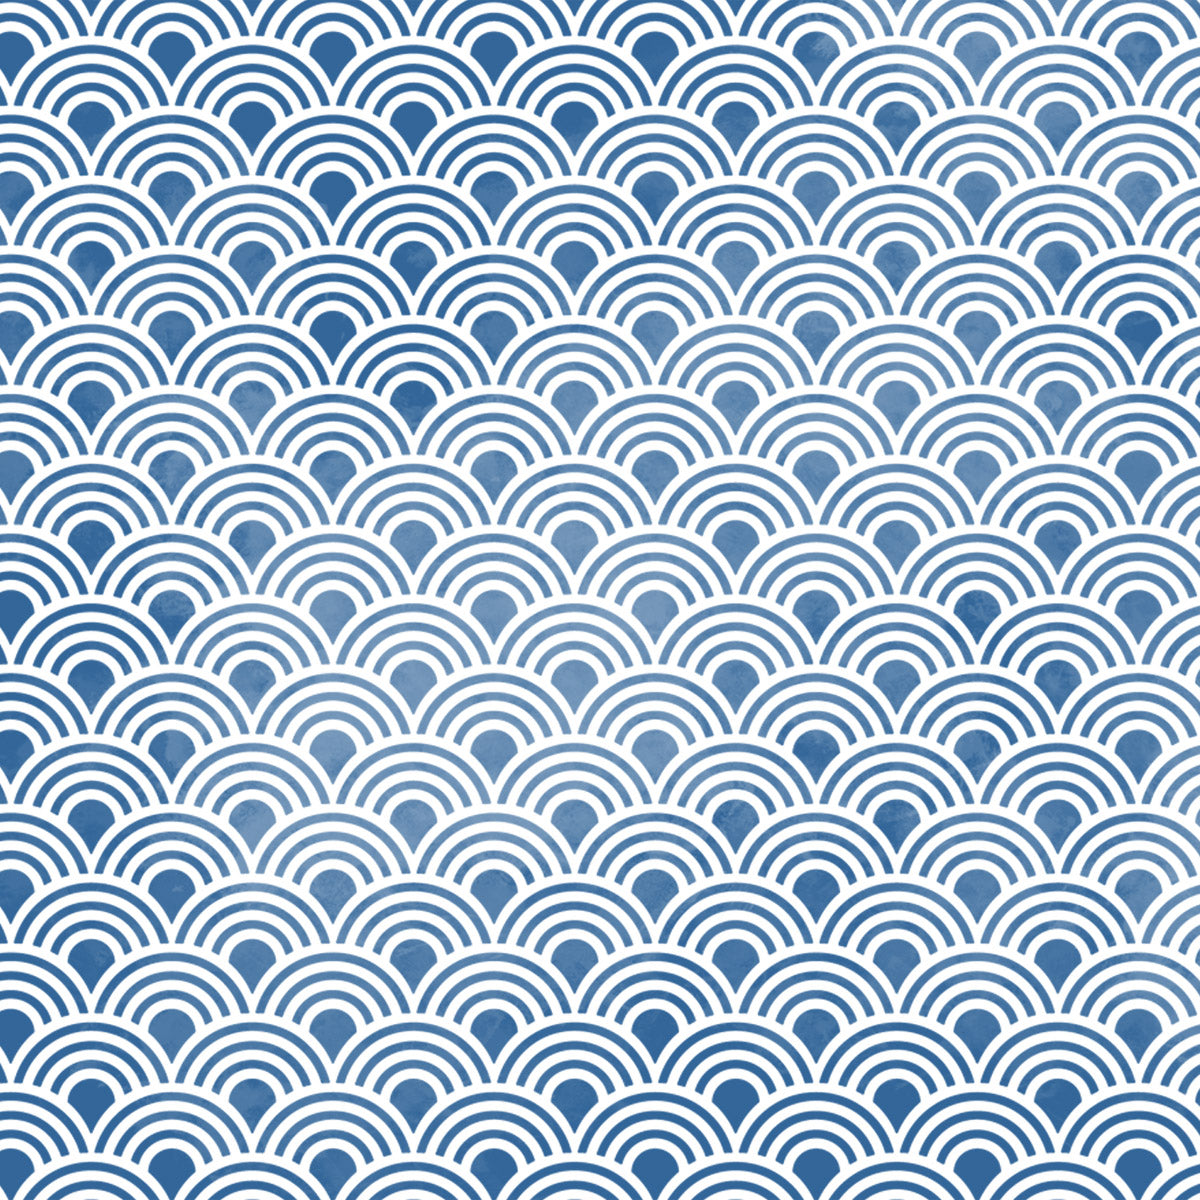 Scallop Repeating Pattern Wall Stencil Close Up View